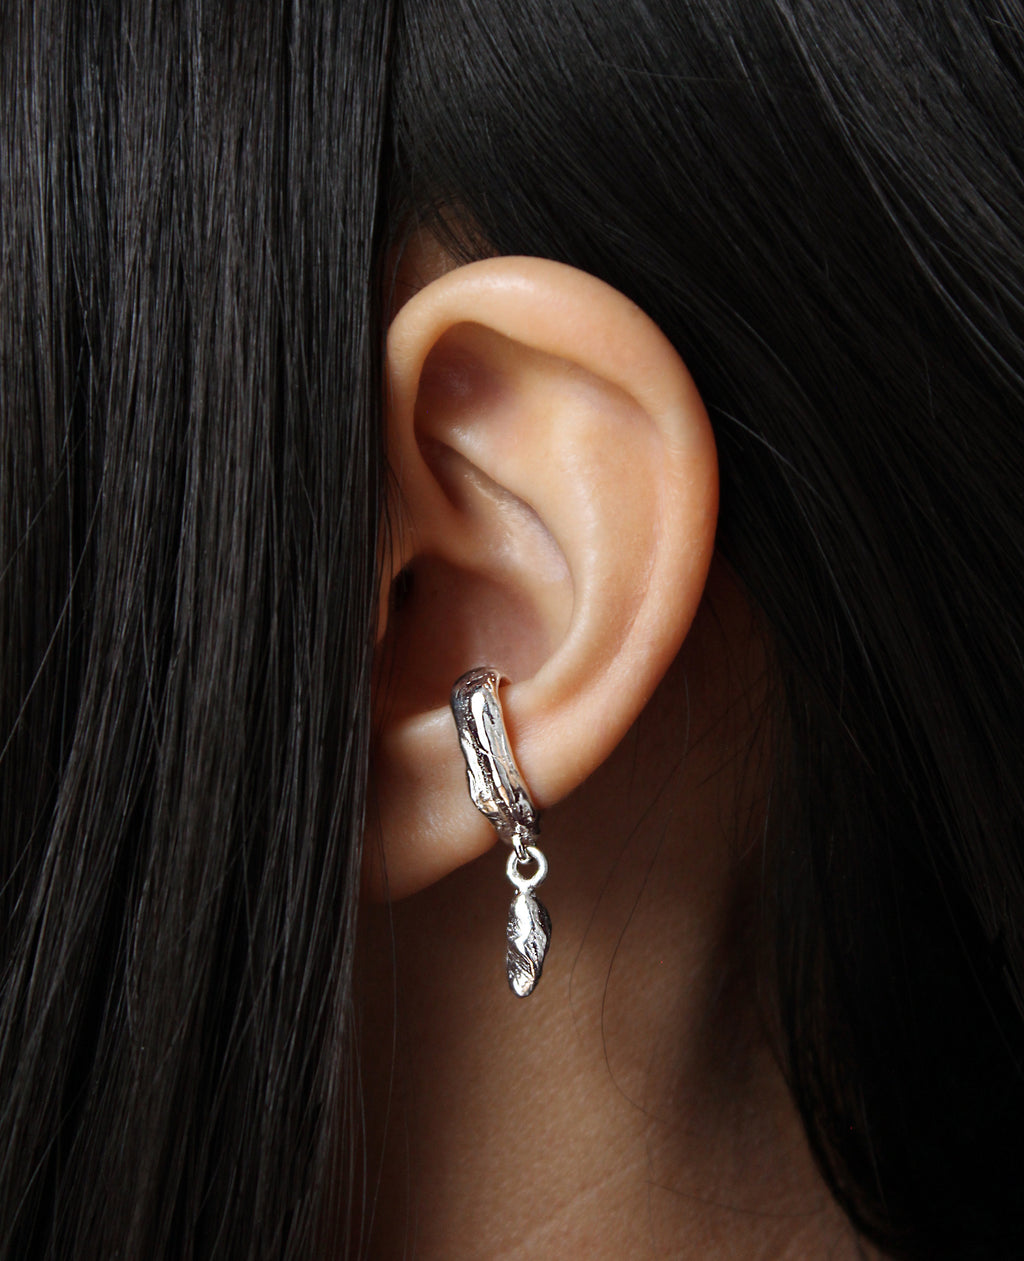 MANCINO // silver ear cuff - ORA-C jewelry - handmade jewelry by Montreal based independent designer Caroline Pham